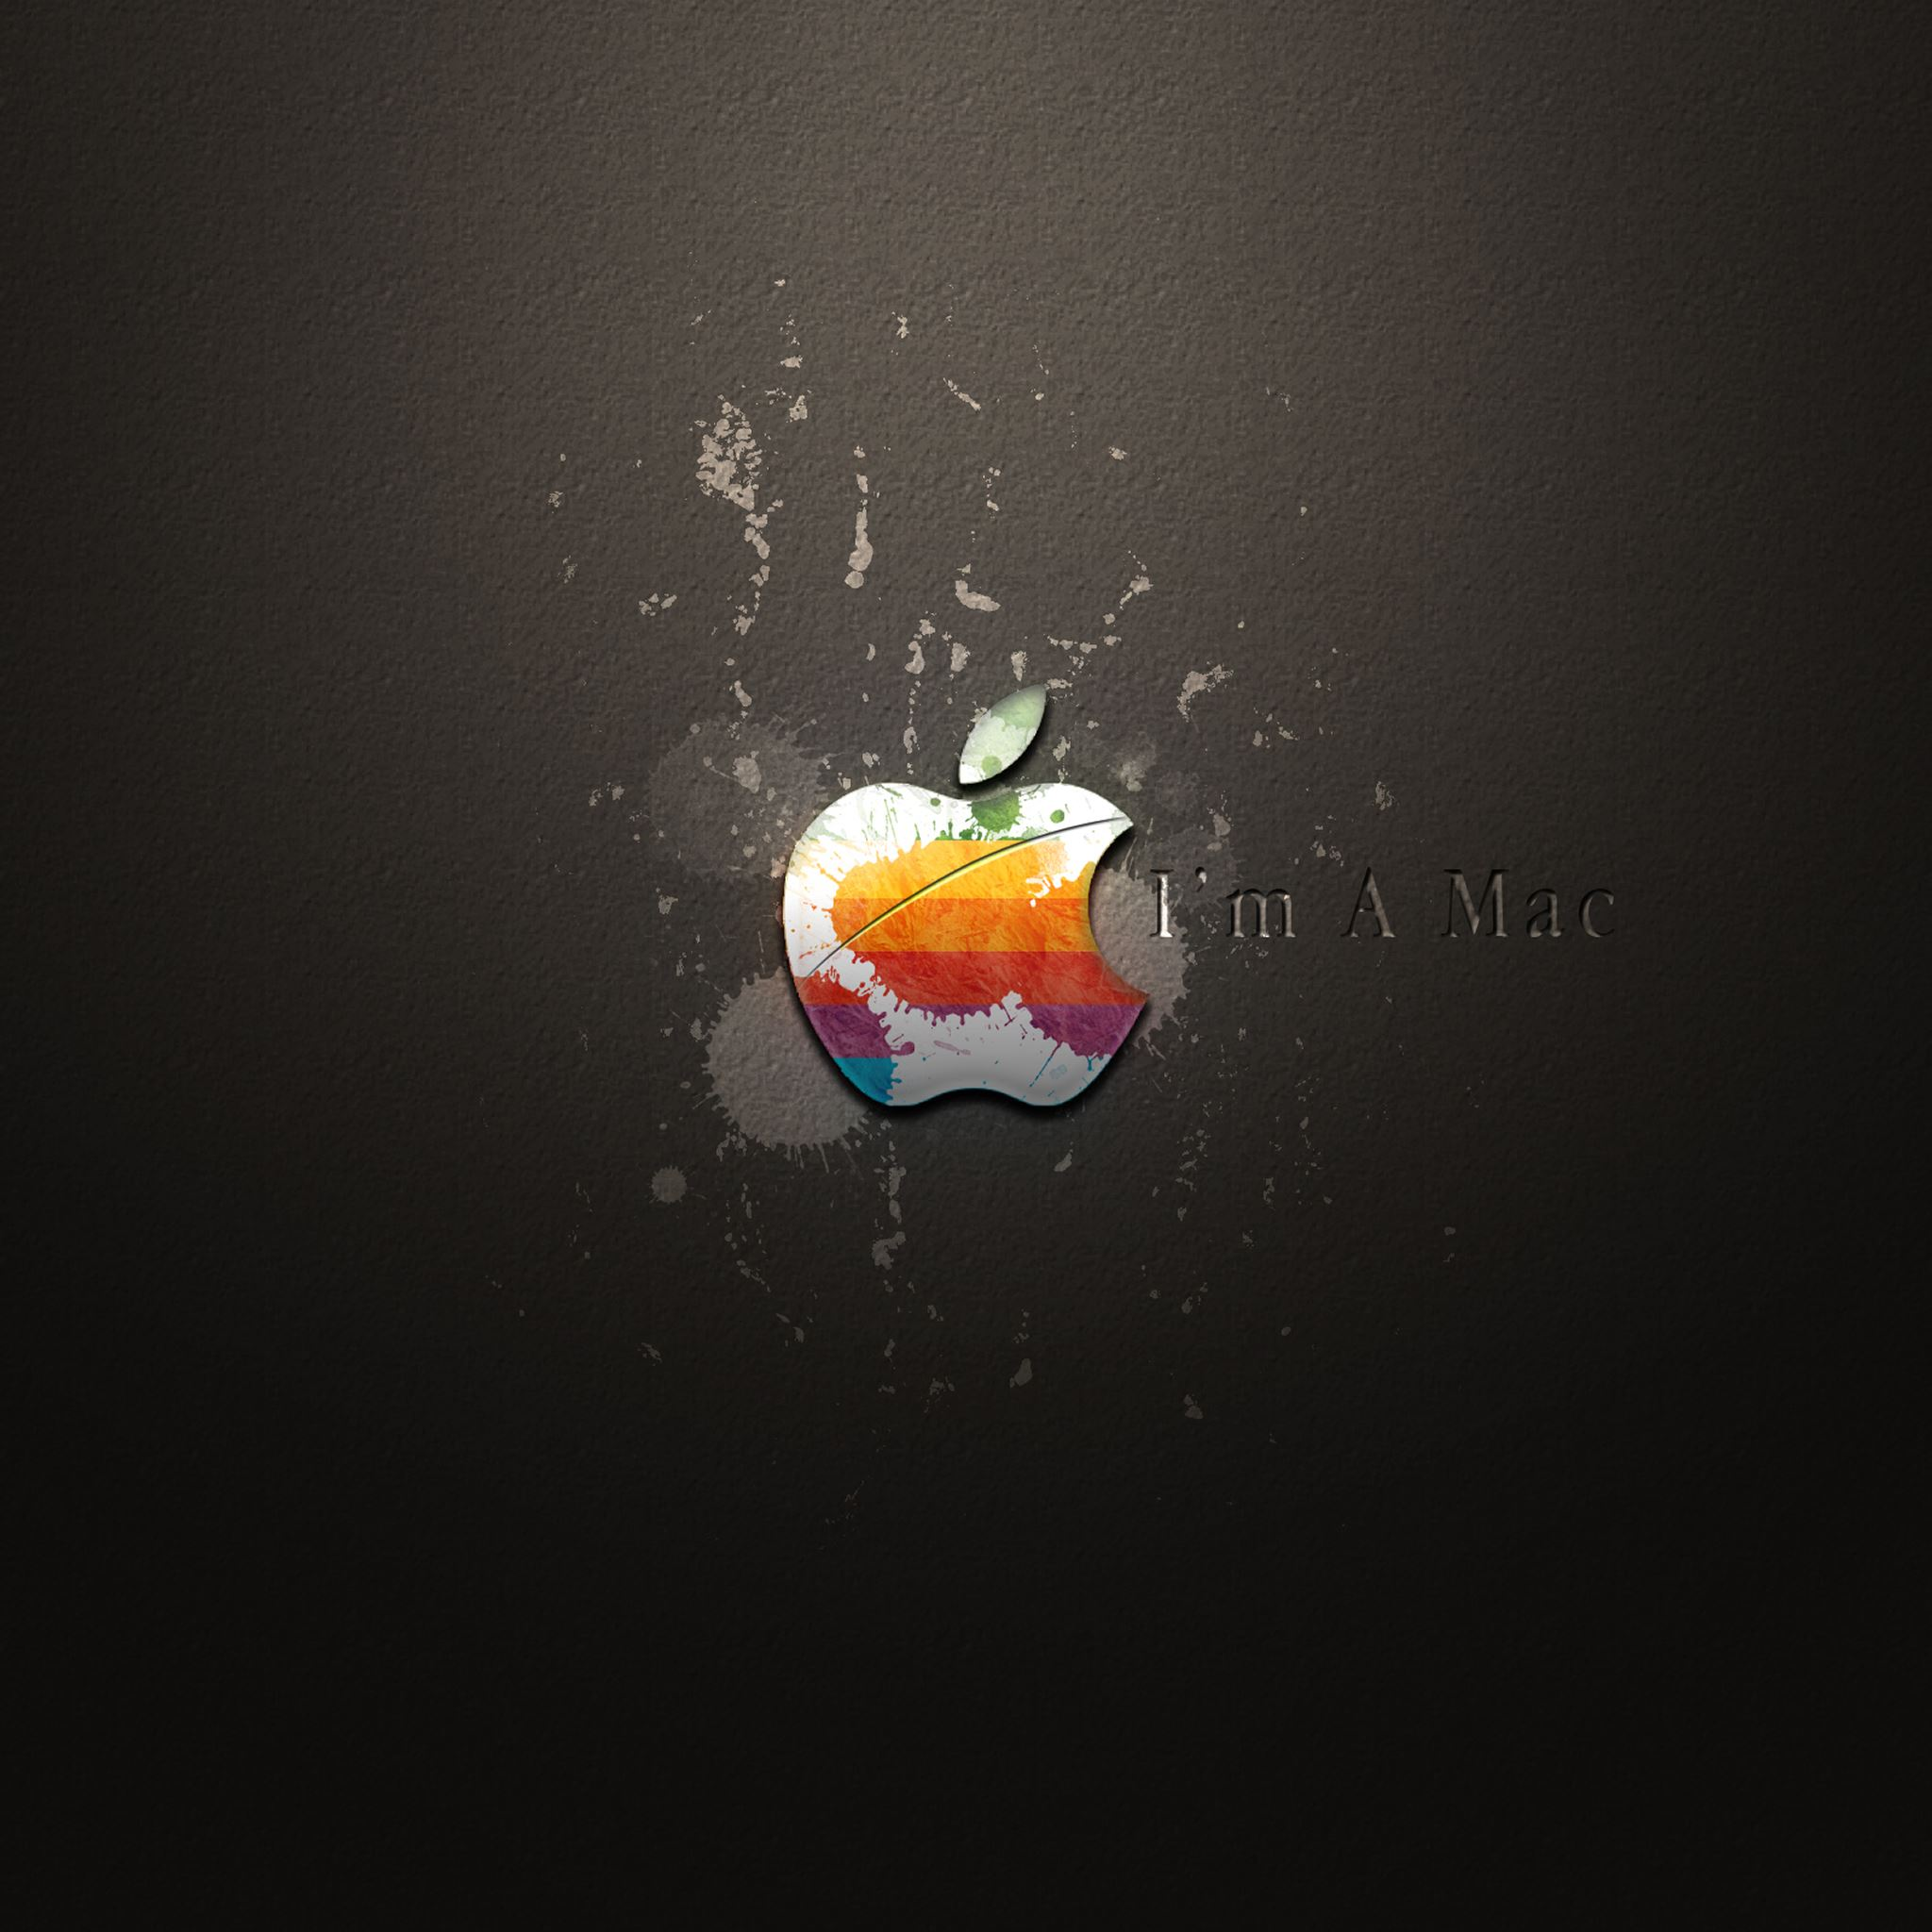 I am a Mac iPad Air wallpaper